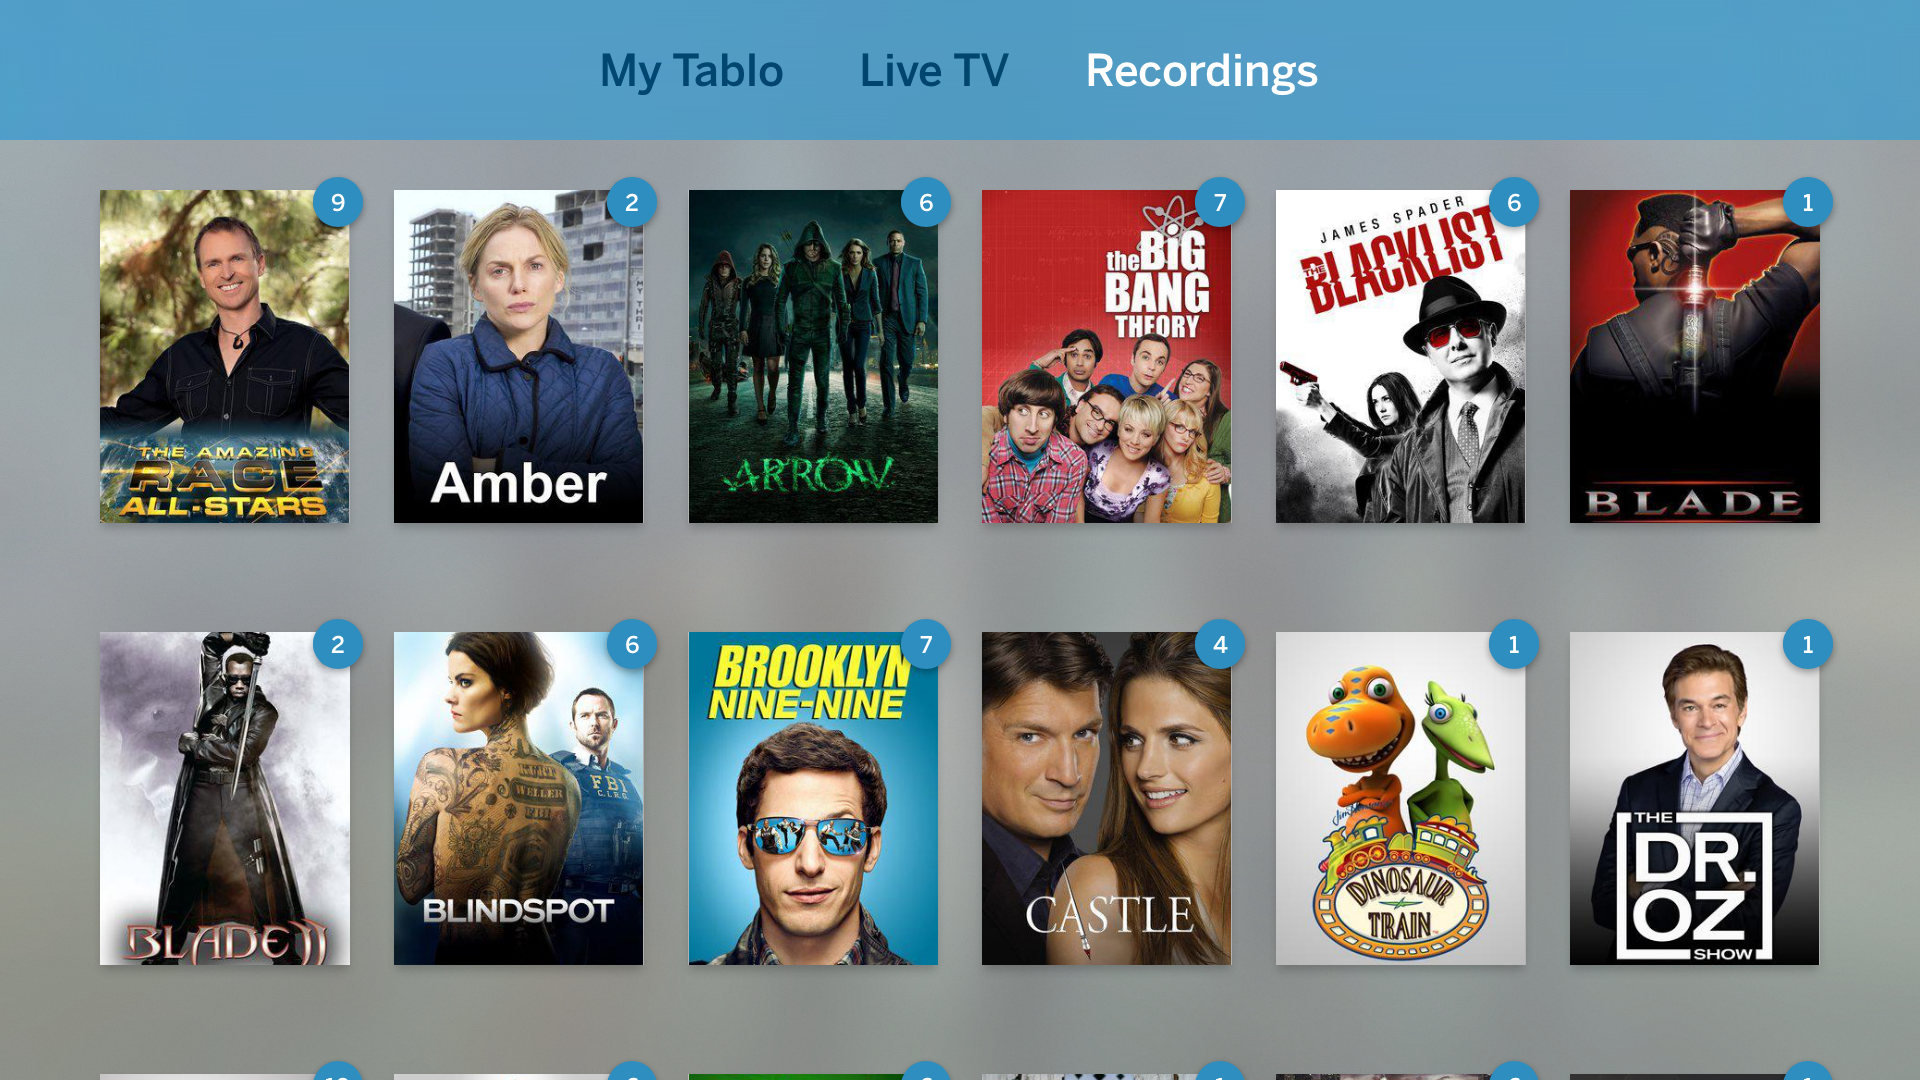 Tablo Apple TV recordings